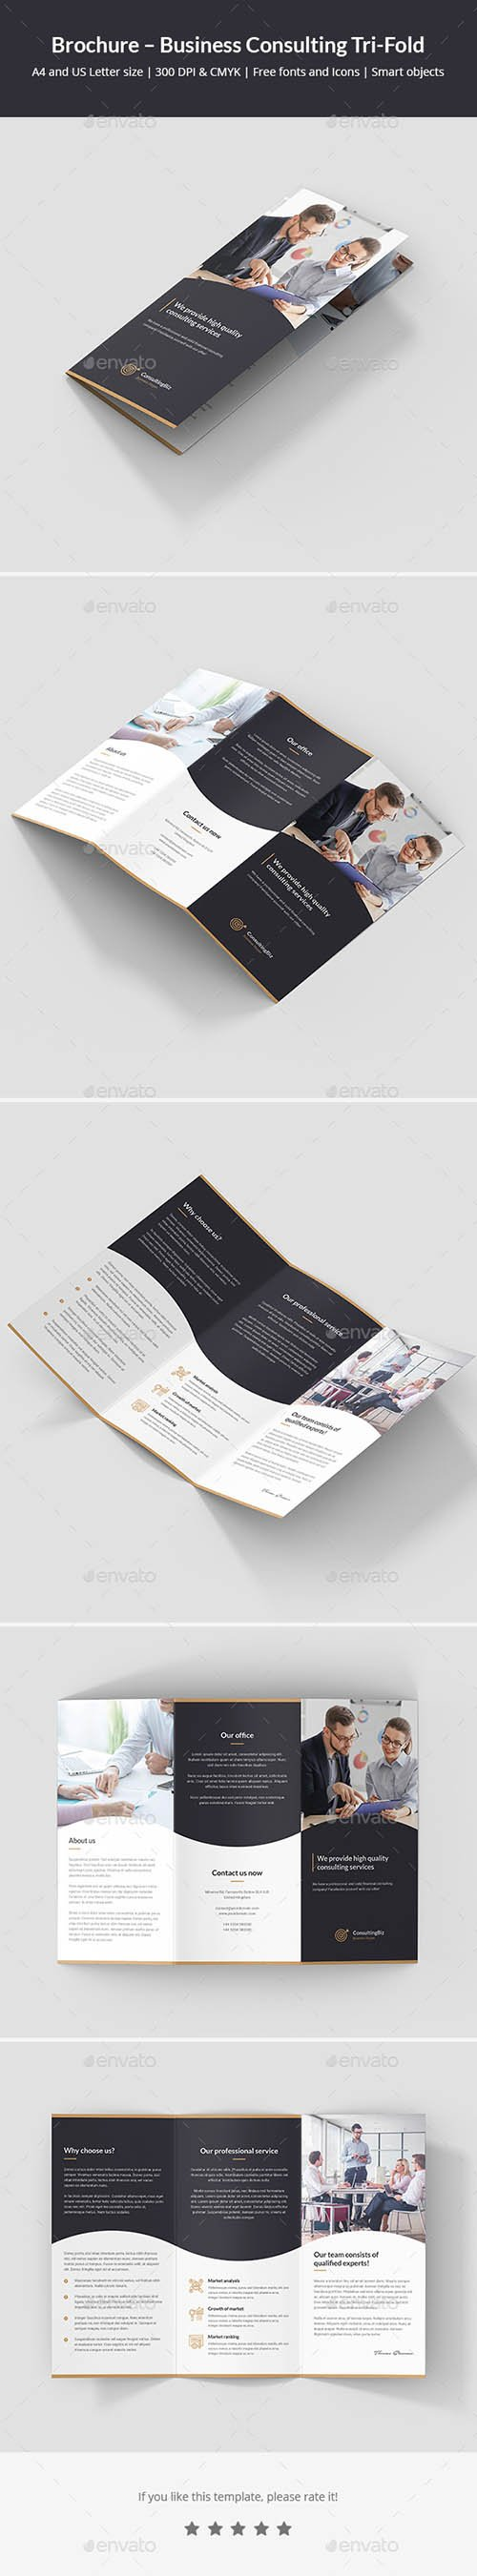 GR - Brochure – Business Consulting Tri-Fold 22015194